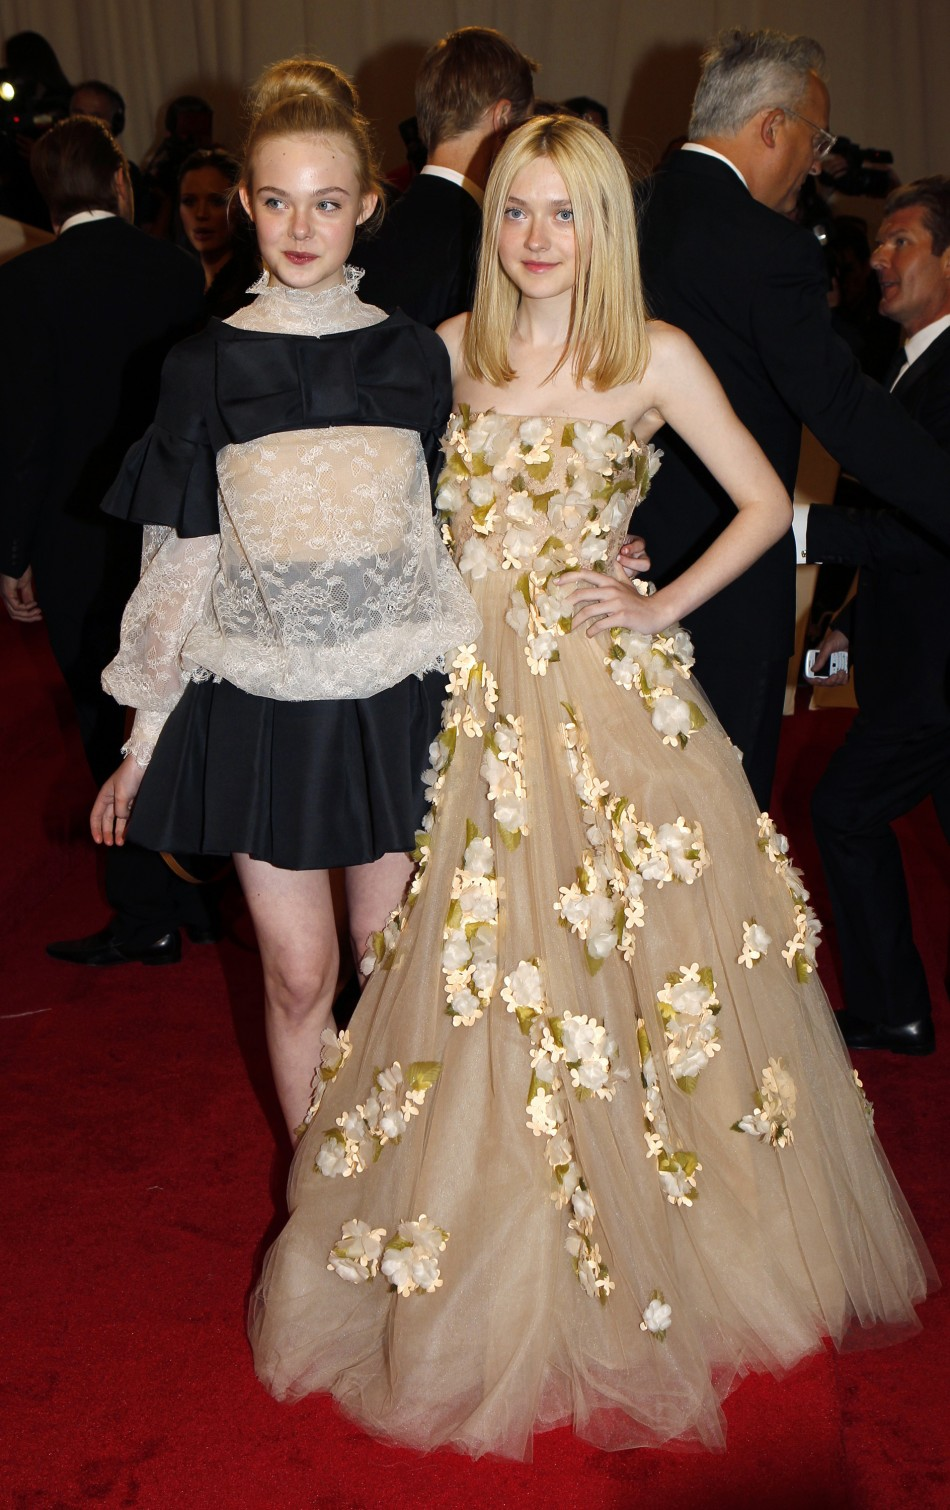 Fanning sisters